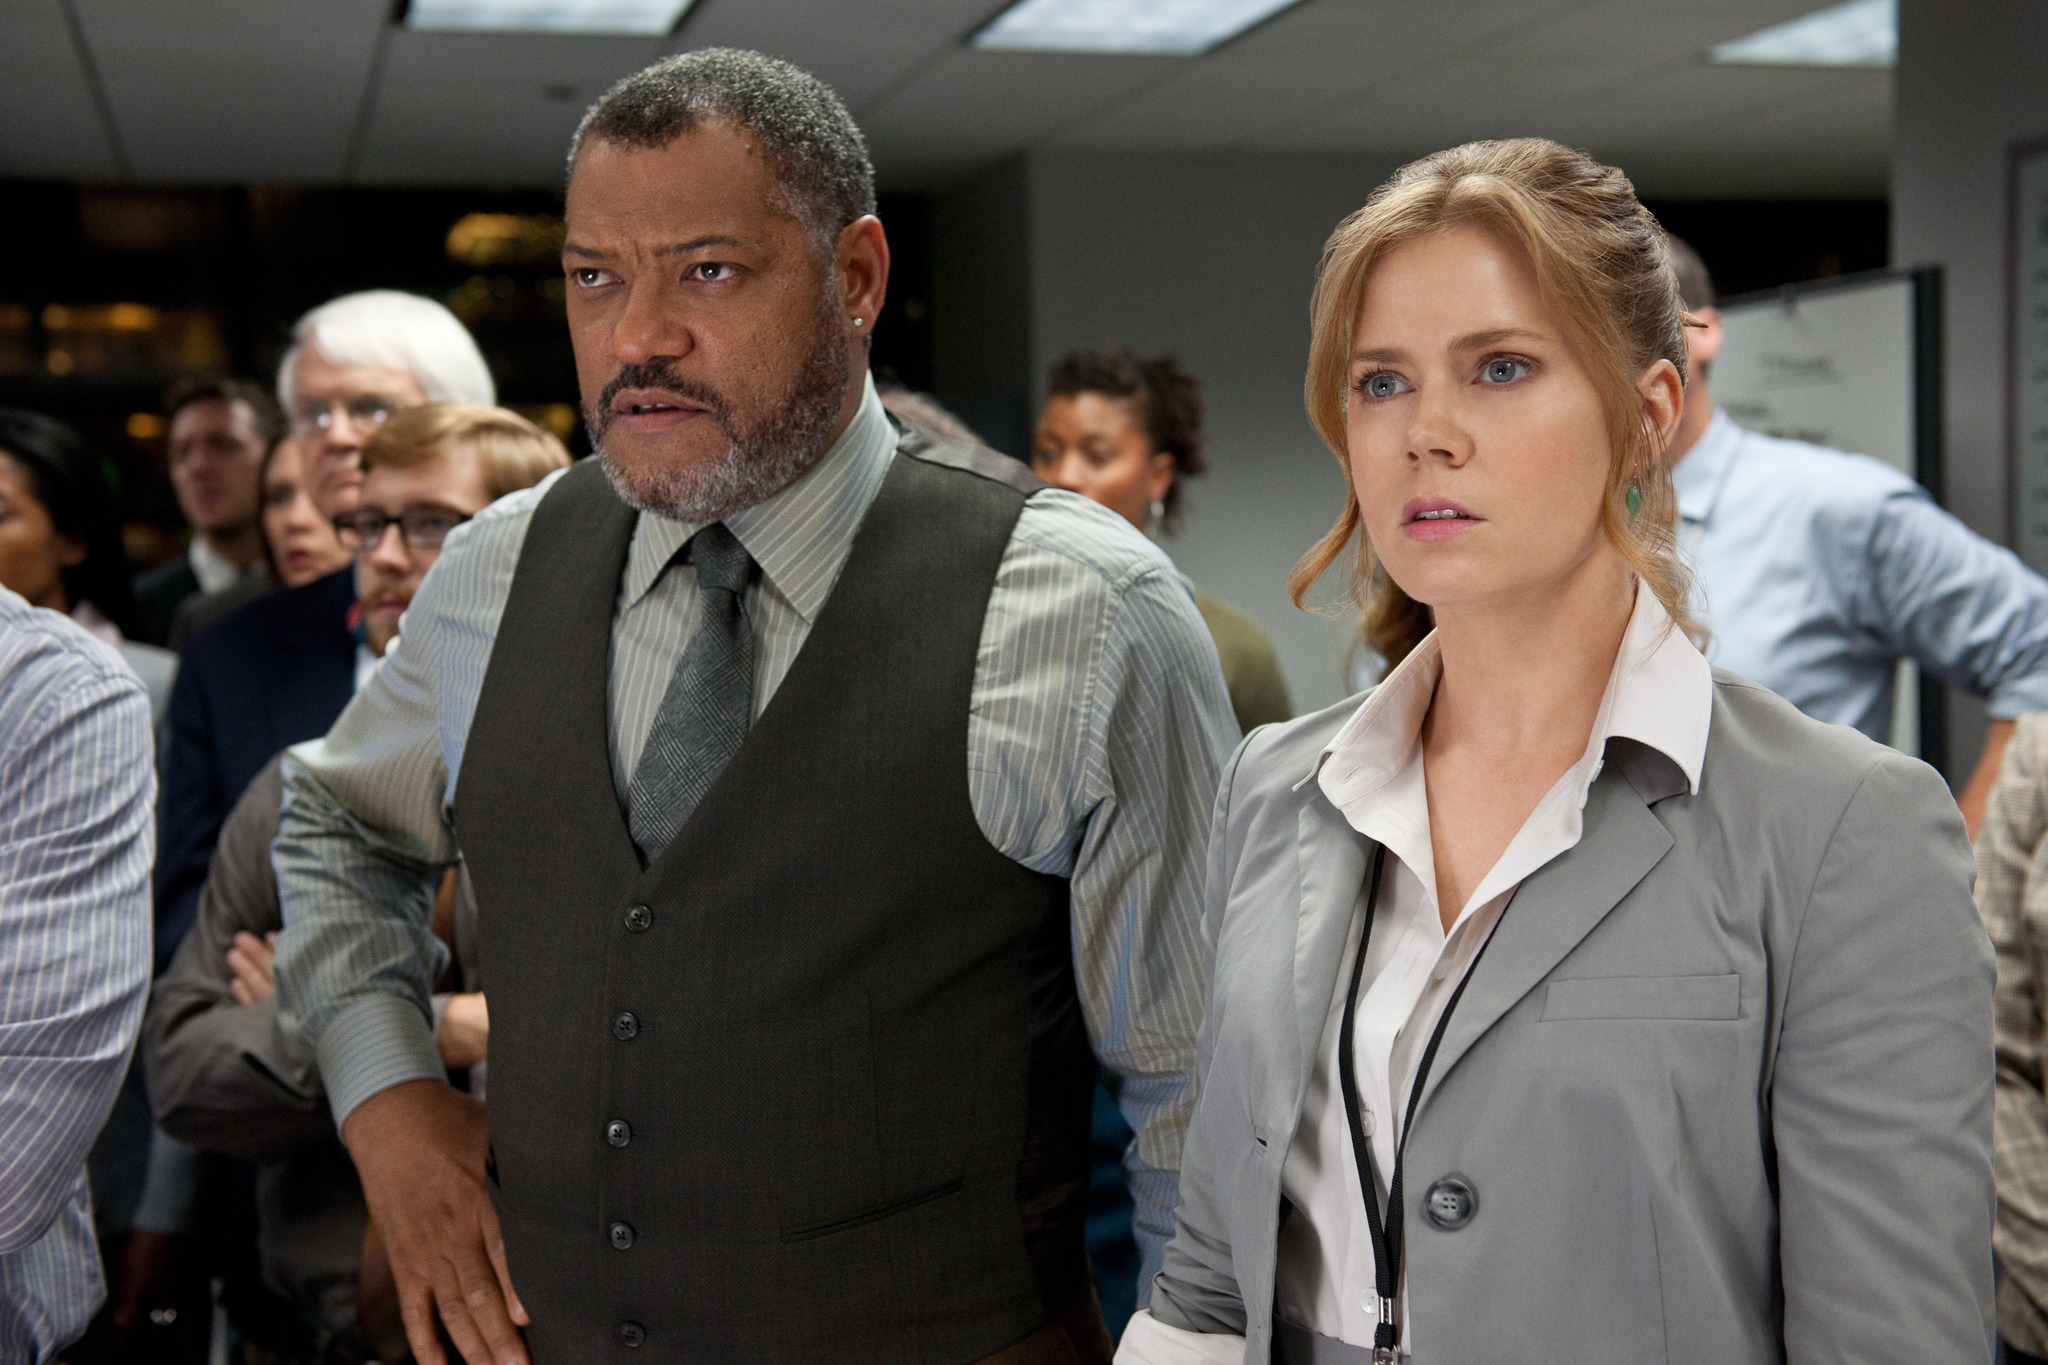 Laurence Fishburne and Amy Adams in Man of Steel - HeyUGuys